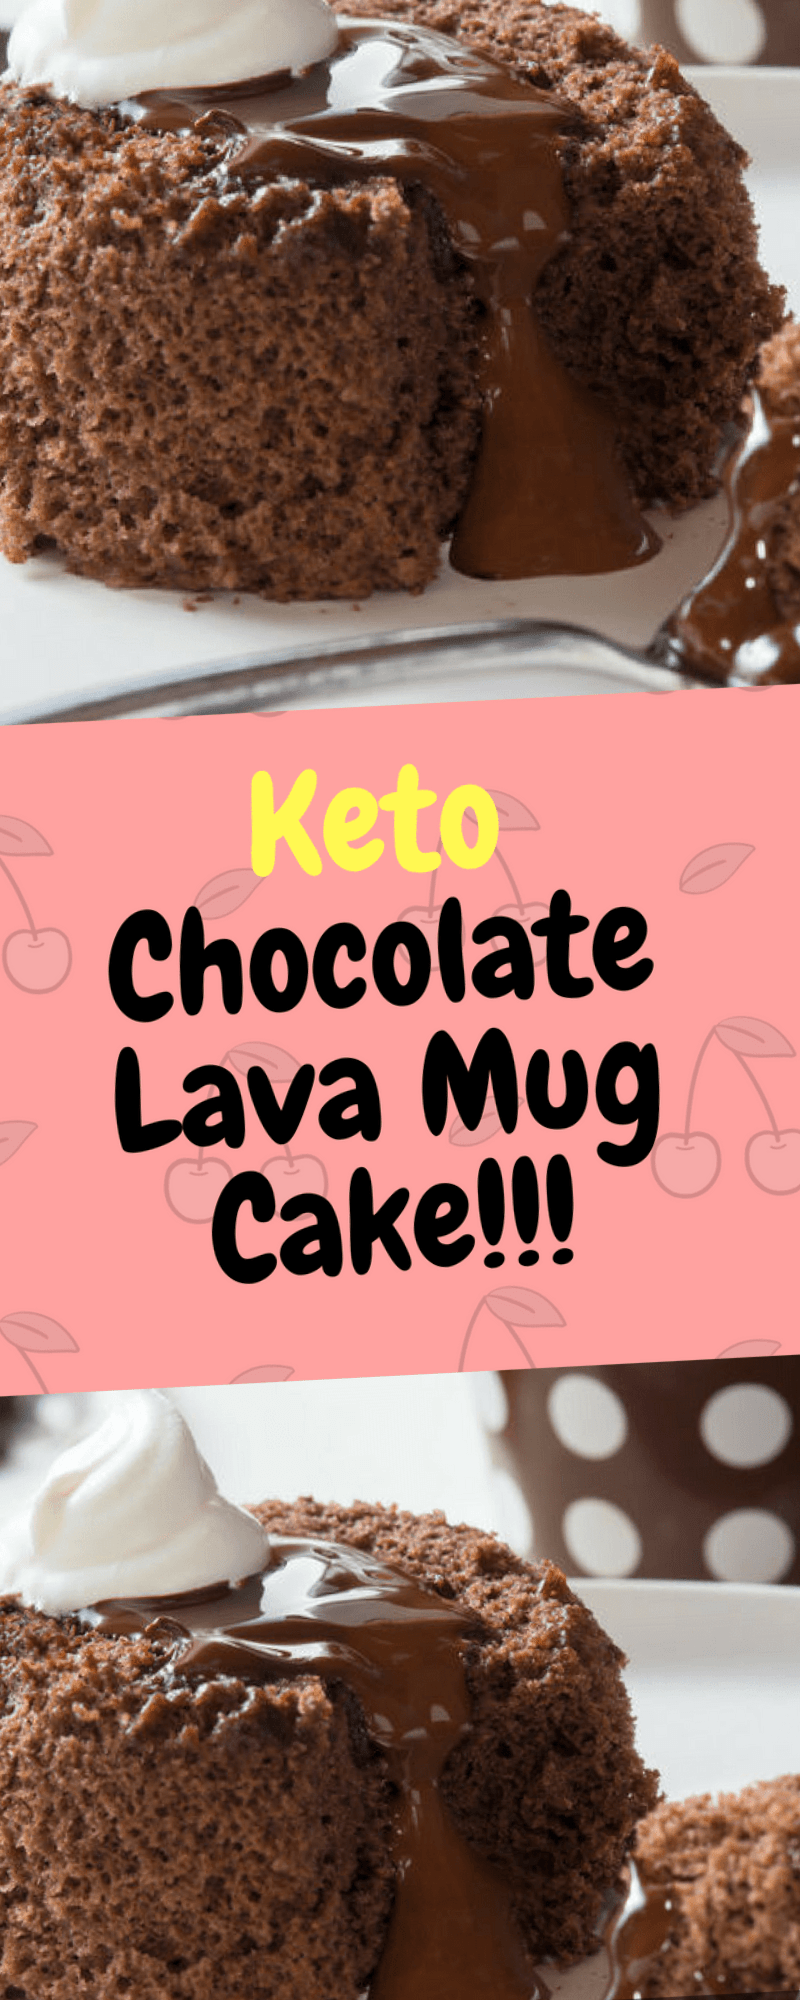 I've had a love for the Chocolate lava cake as long as I can remember, but now, I can enjoy a Keto Chocolate Lava Mug Cake recipe that only takes seconds to make!! I made this mug cake recipe for my daughter and she immediately asked me to teach her how to make it herself! … #mugcake